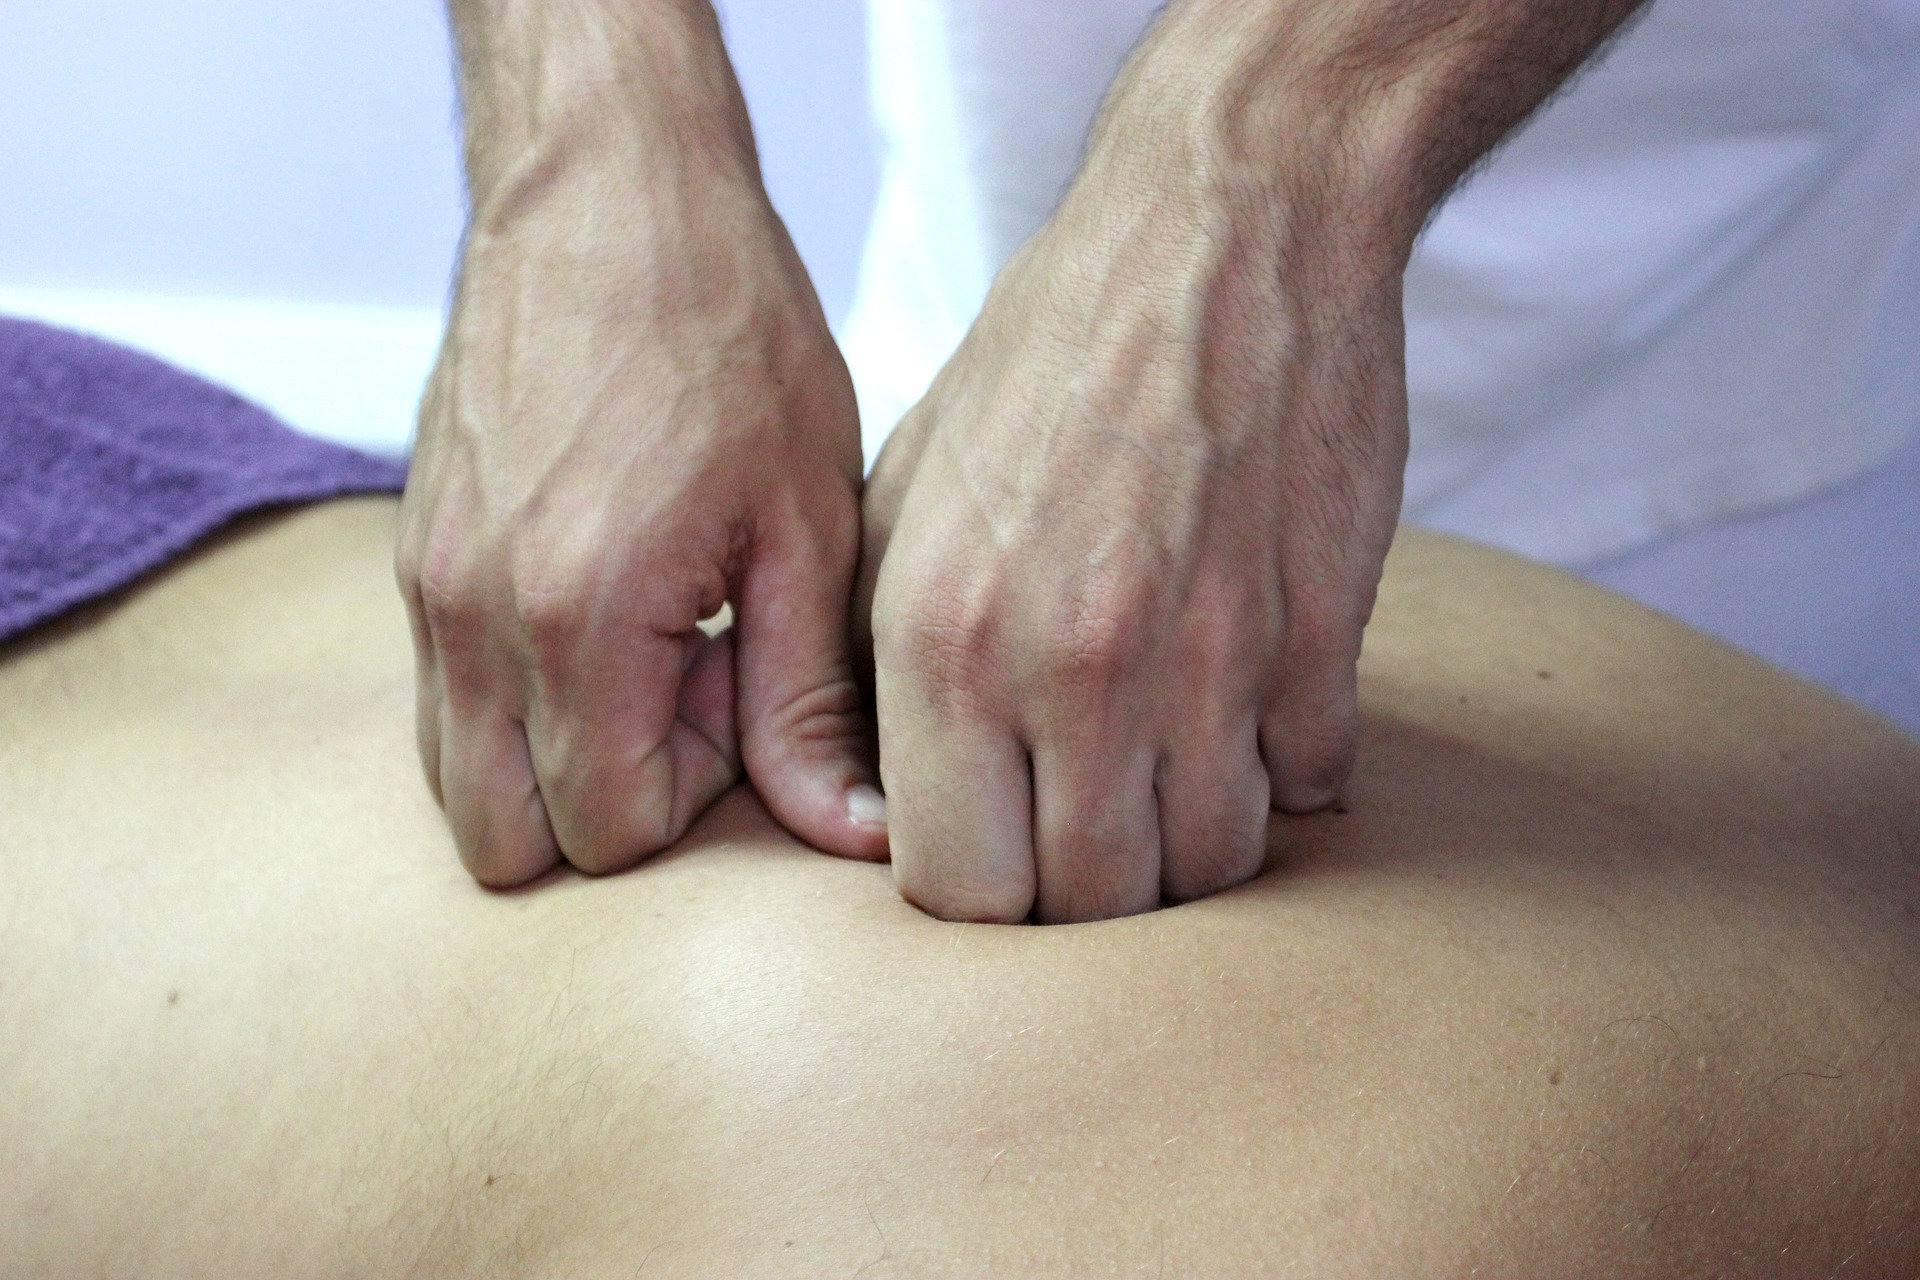 physical therapist treating lower back pain with manual therapy